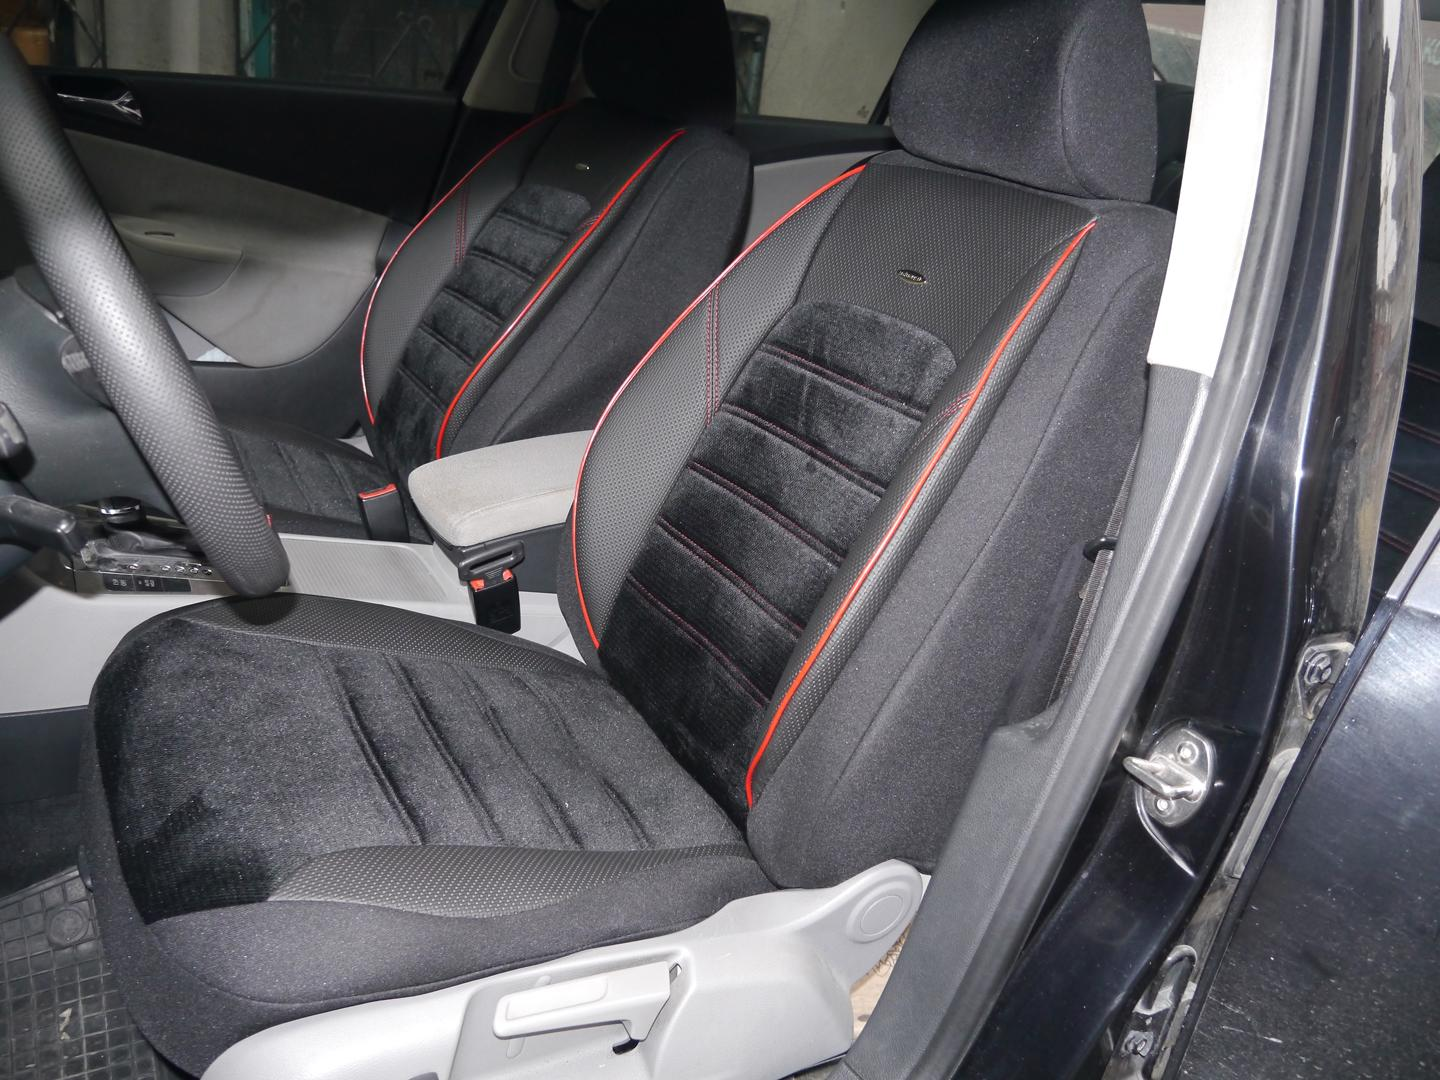 Car Seat Covers Protectors For Bmw 3 Series F30 No4a